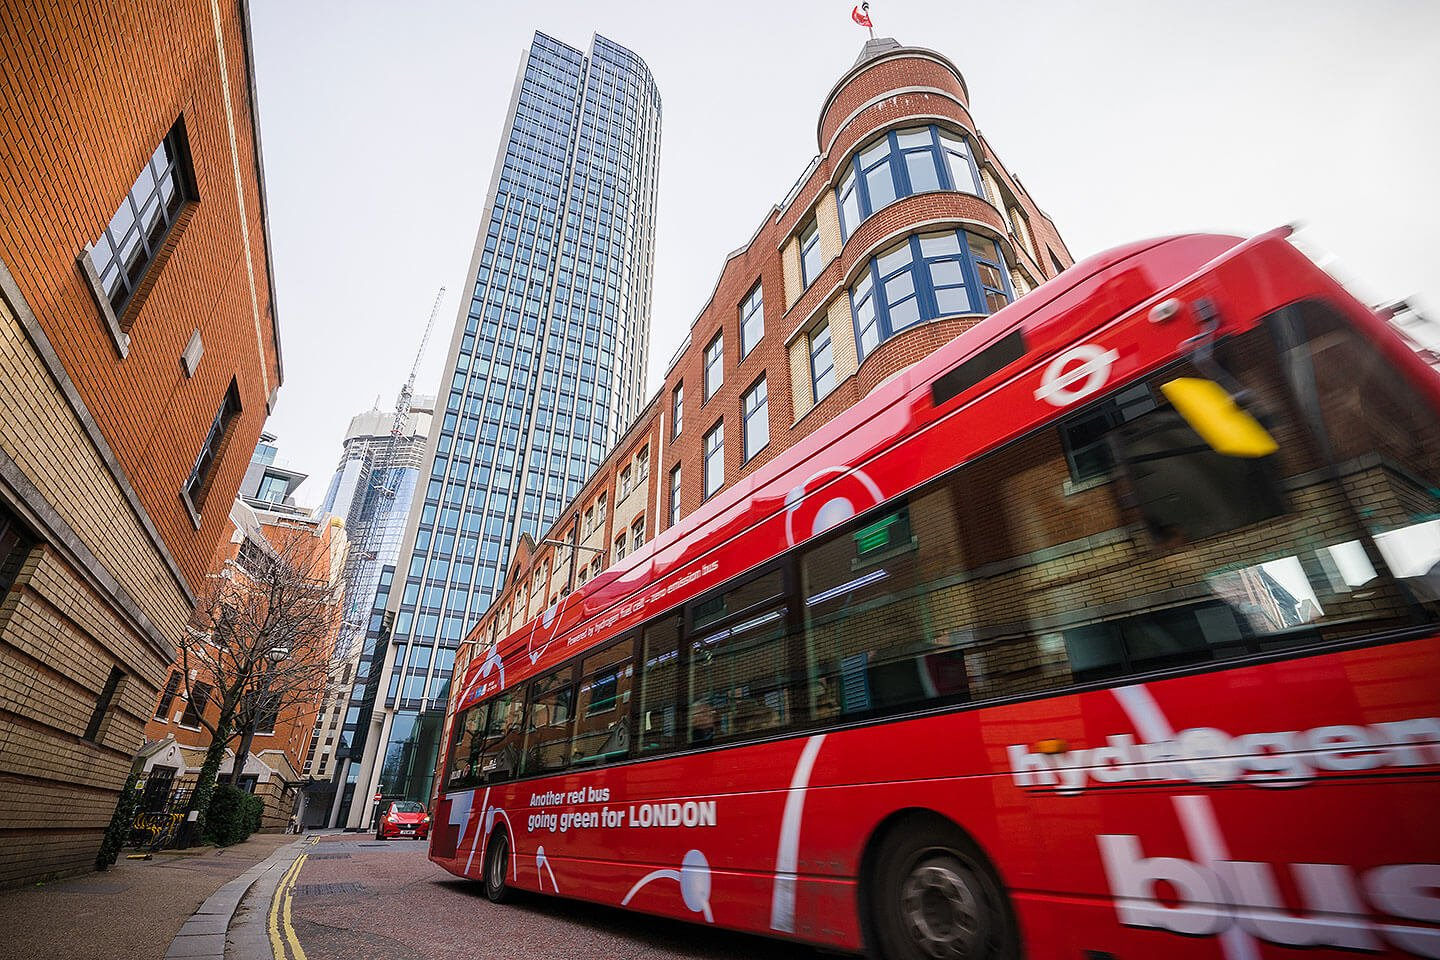 Bus industry unveils vision for achieving one billion extra bus journeys